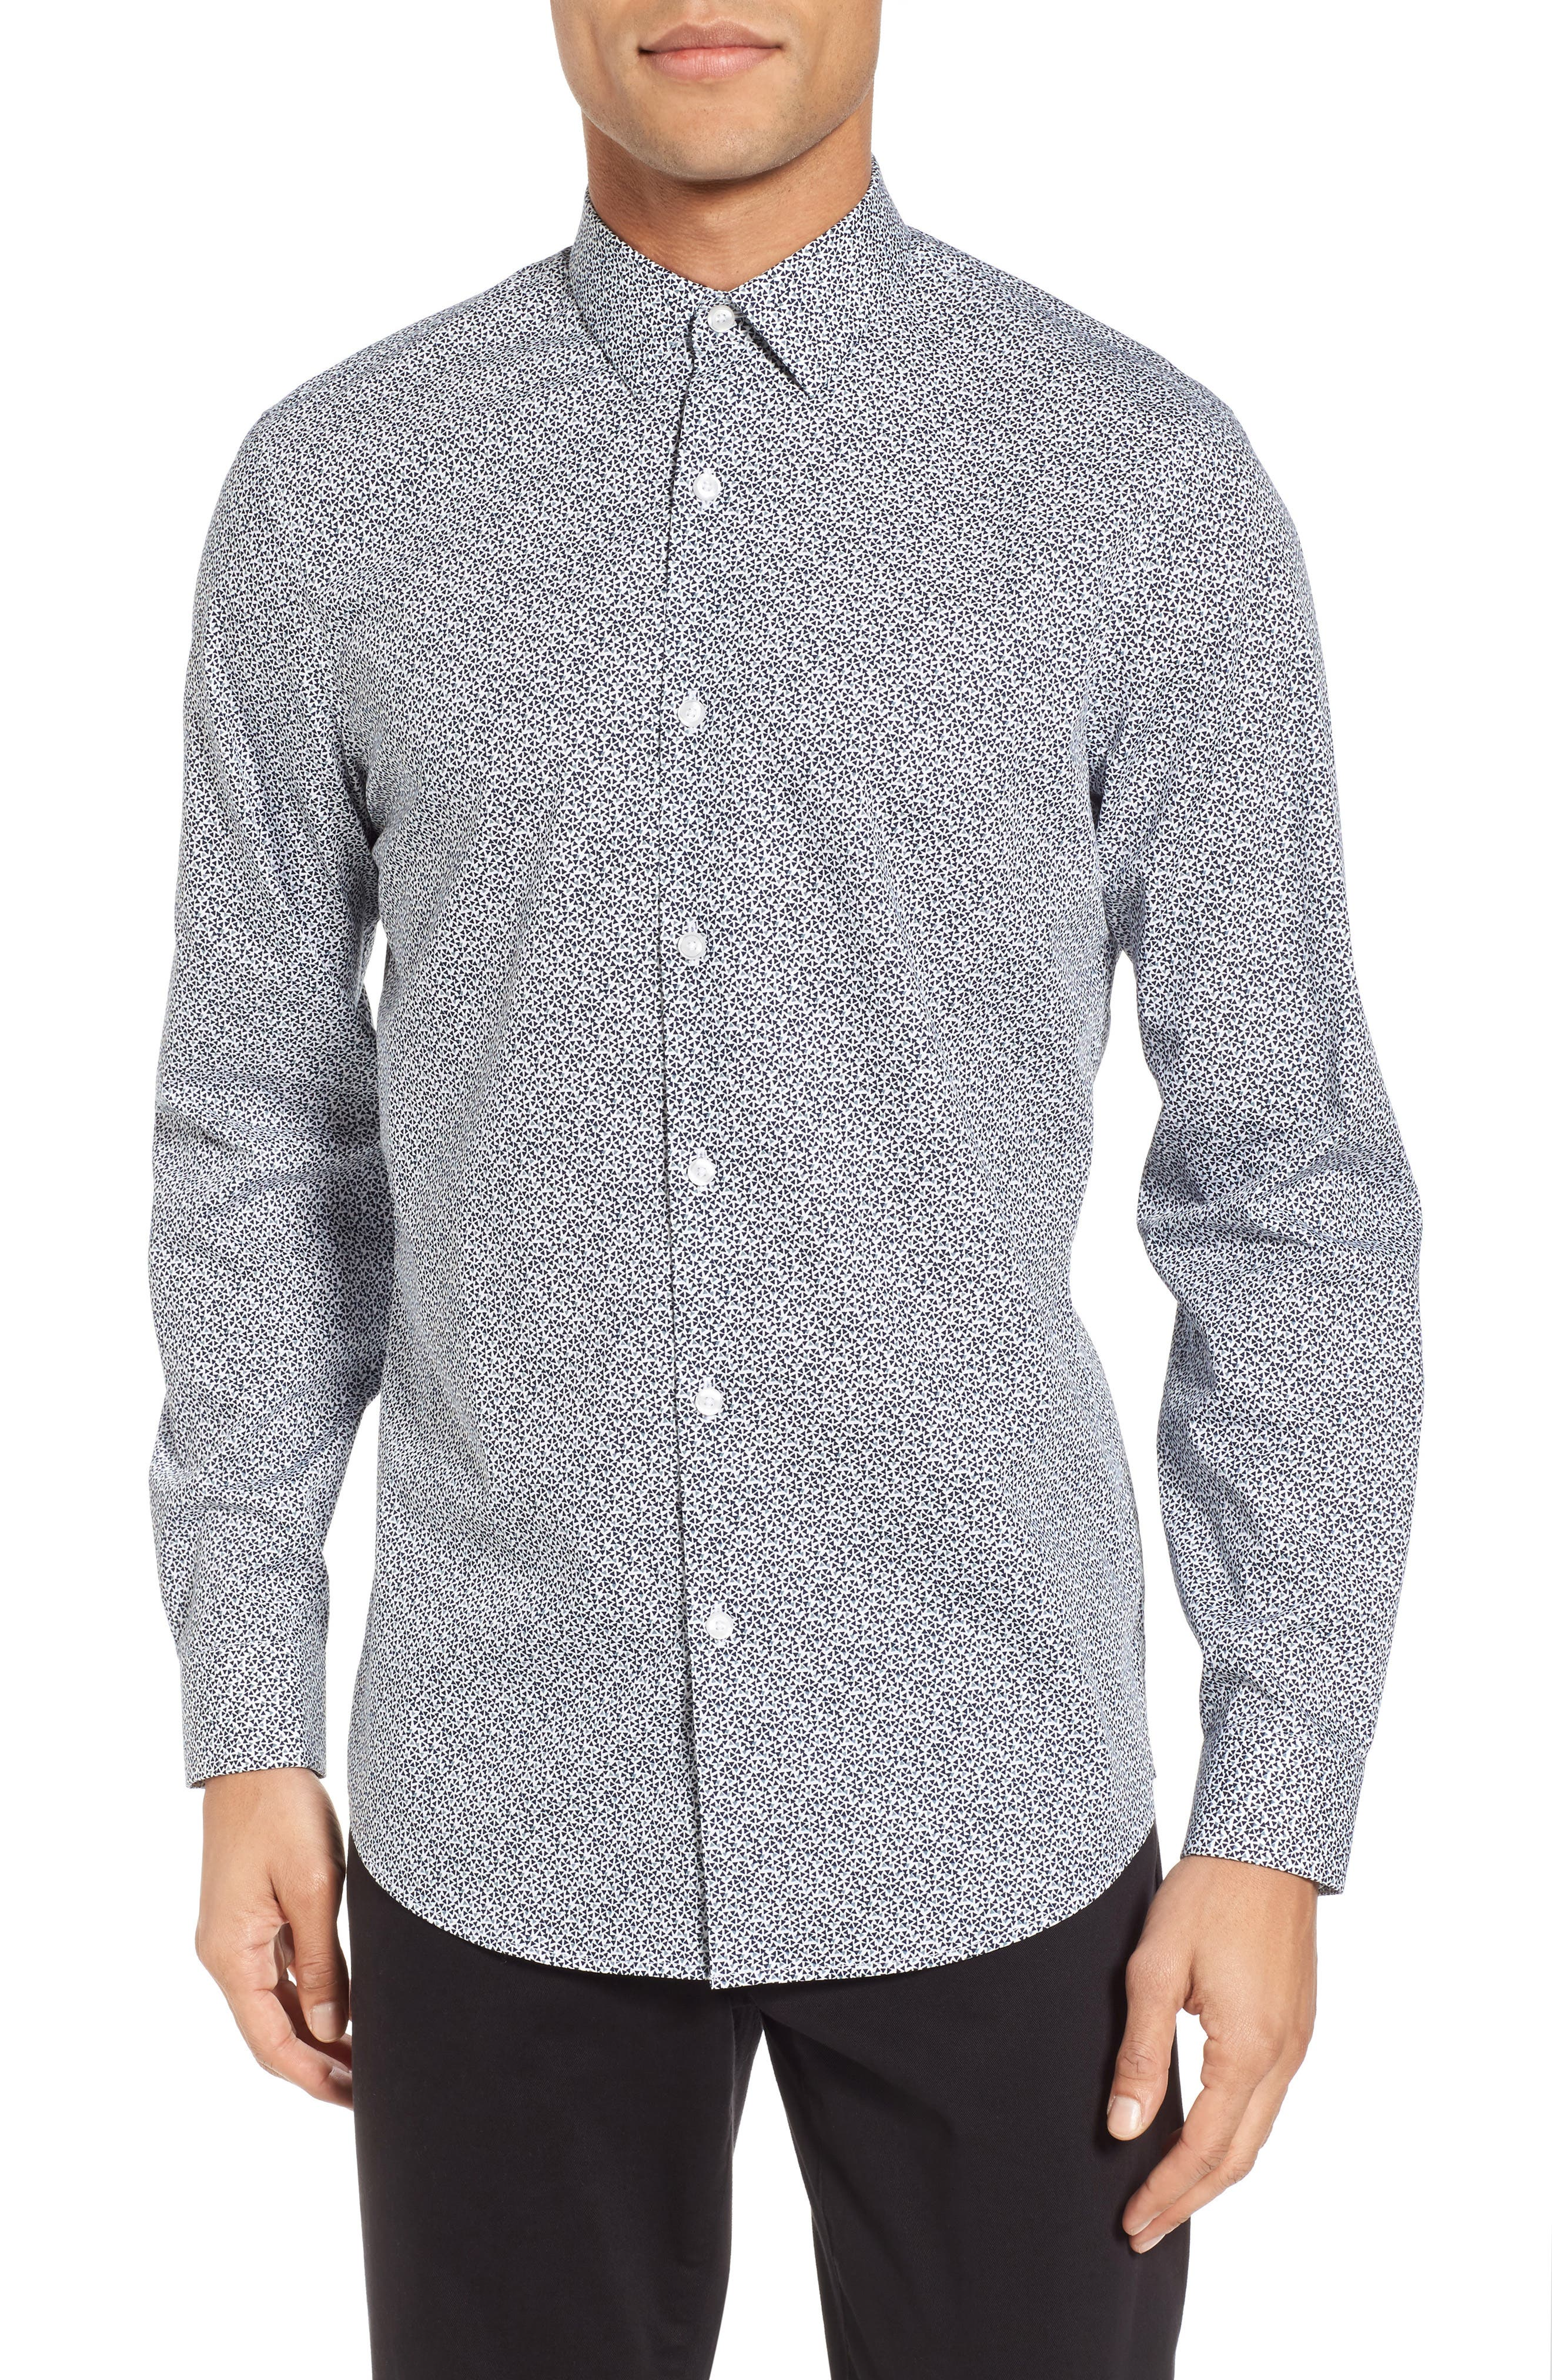 Trim Fit Geometric Sport Shirt,                         Main,                         color, Navy Blue Scatter Triangles